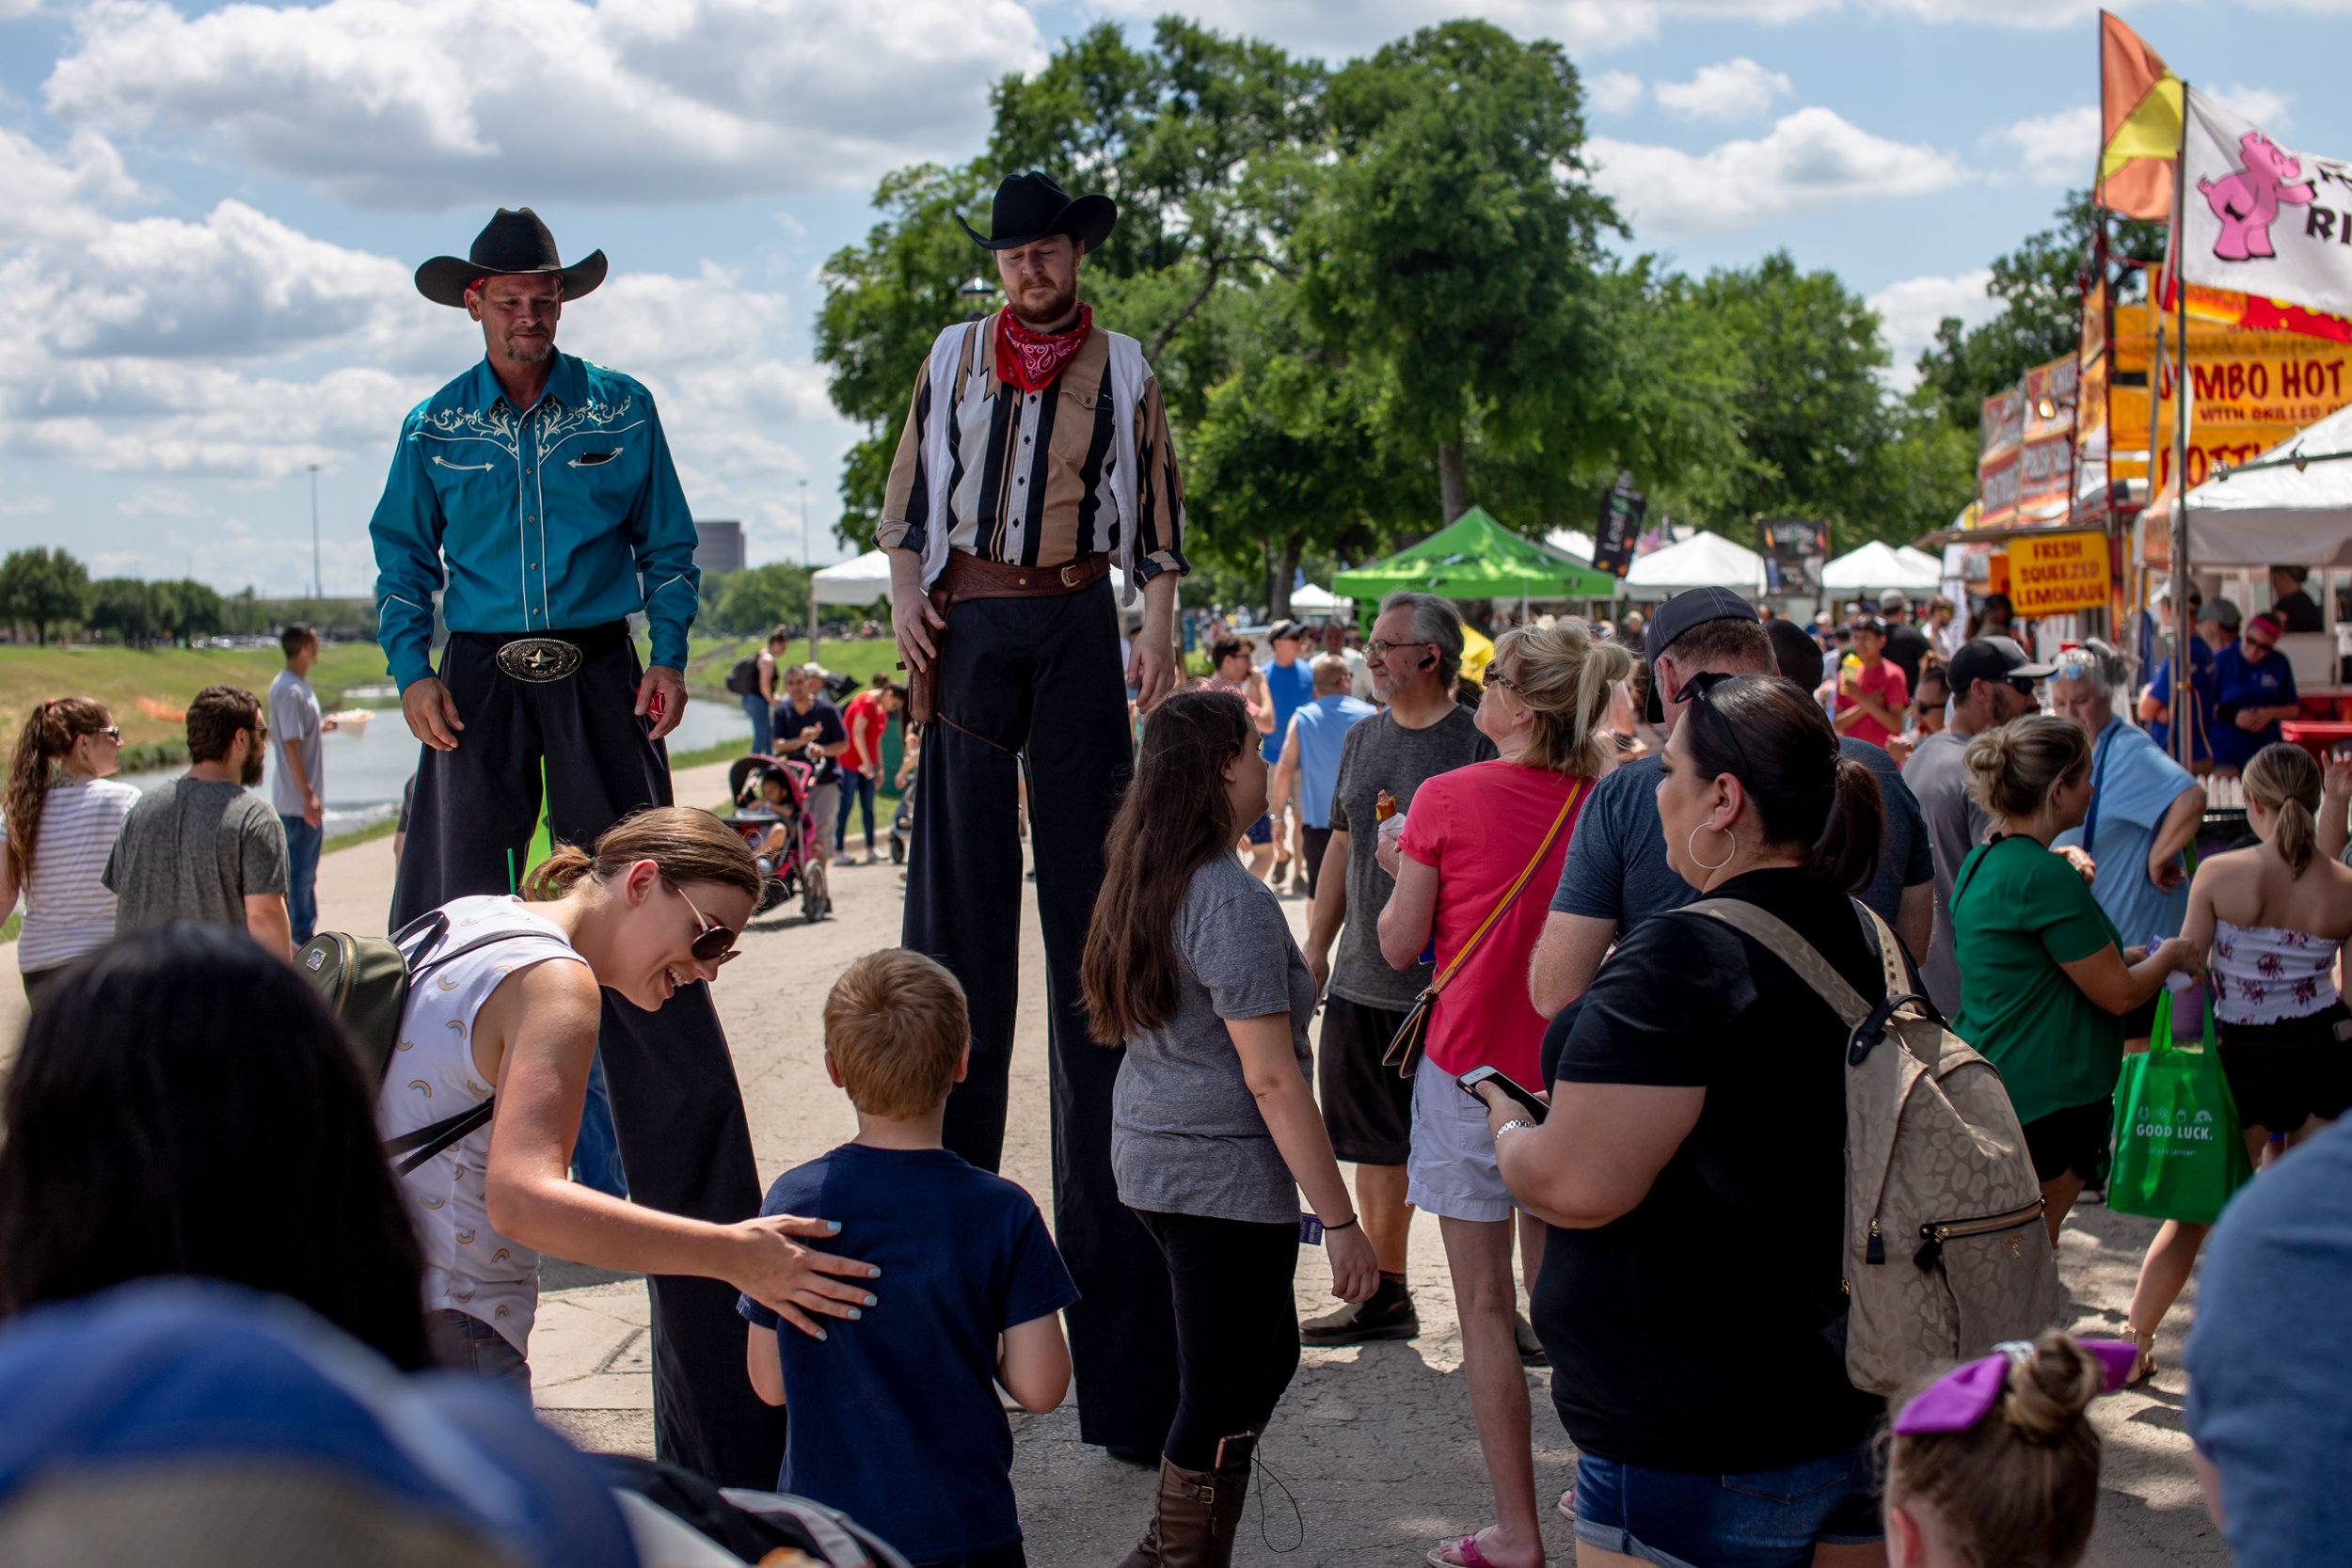 APRIL 05, 2019 | TWO COWBOYS ON STILTS WALK AROUND MAYFEST IN FORT WORTH, TEXAS.